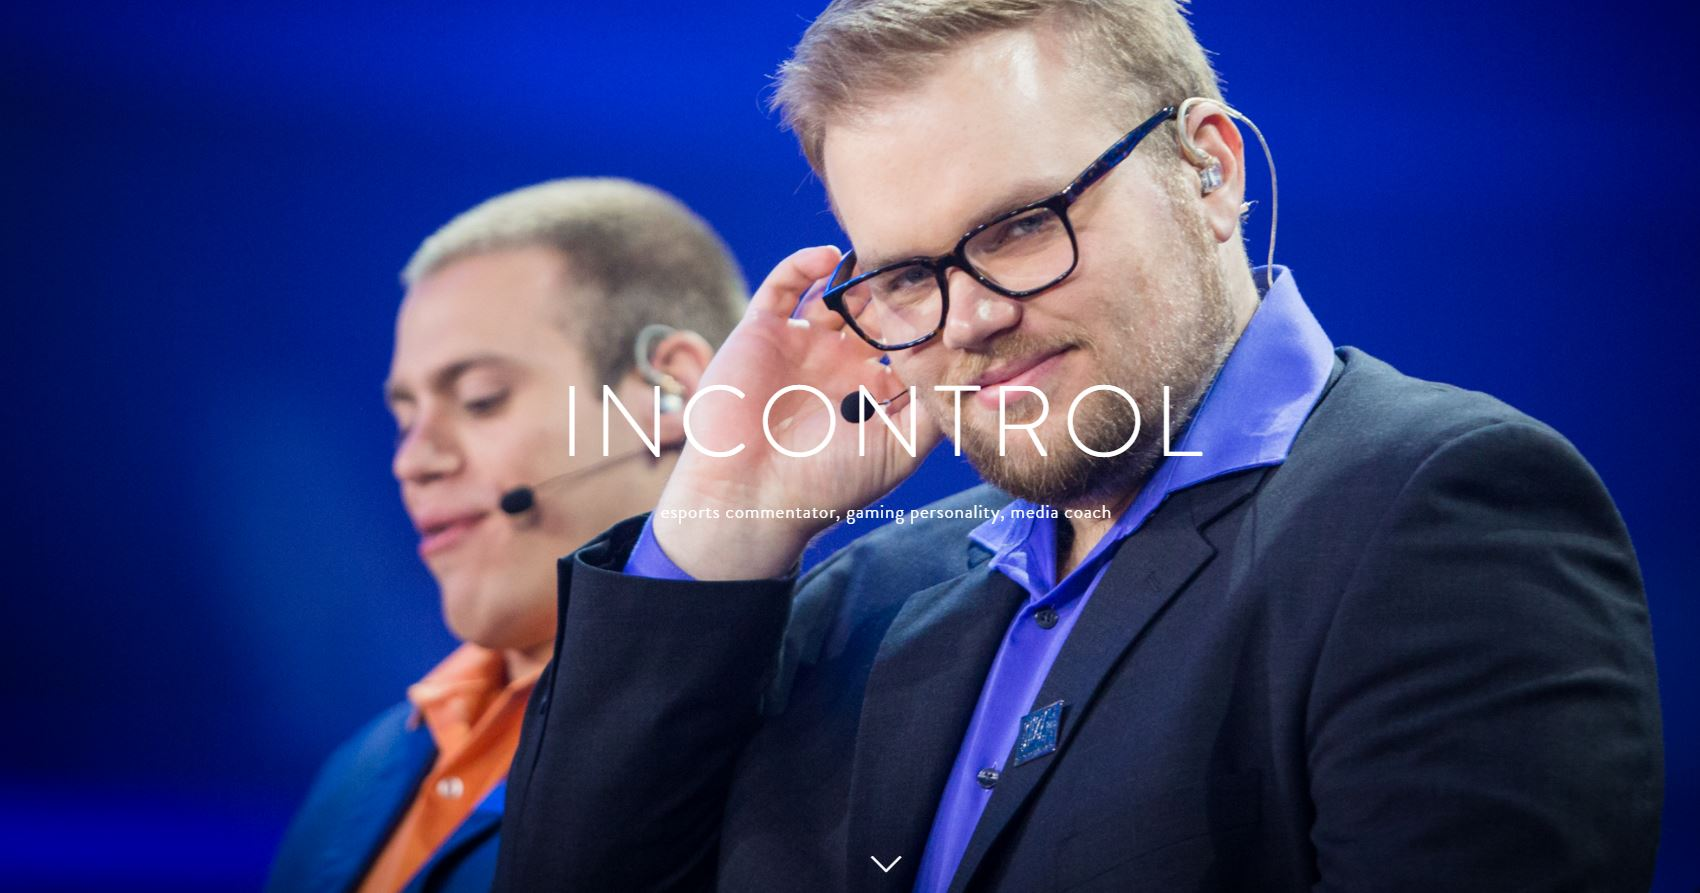 At The Age Of 33 'iNcontrol' Robinson Died